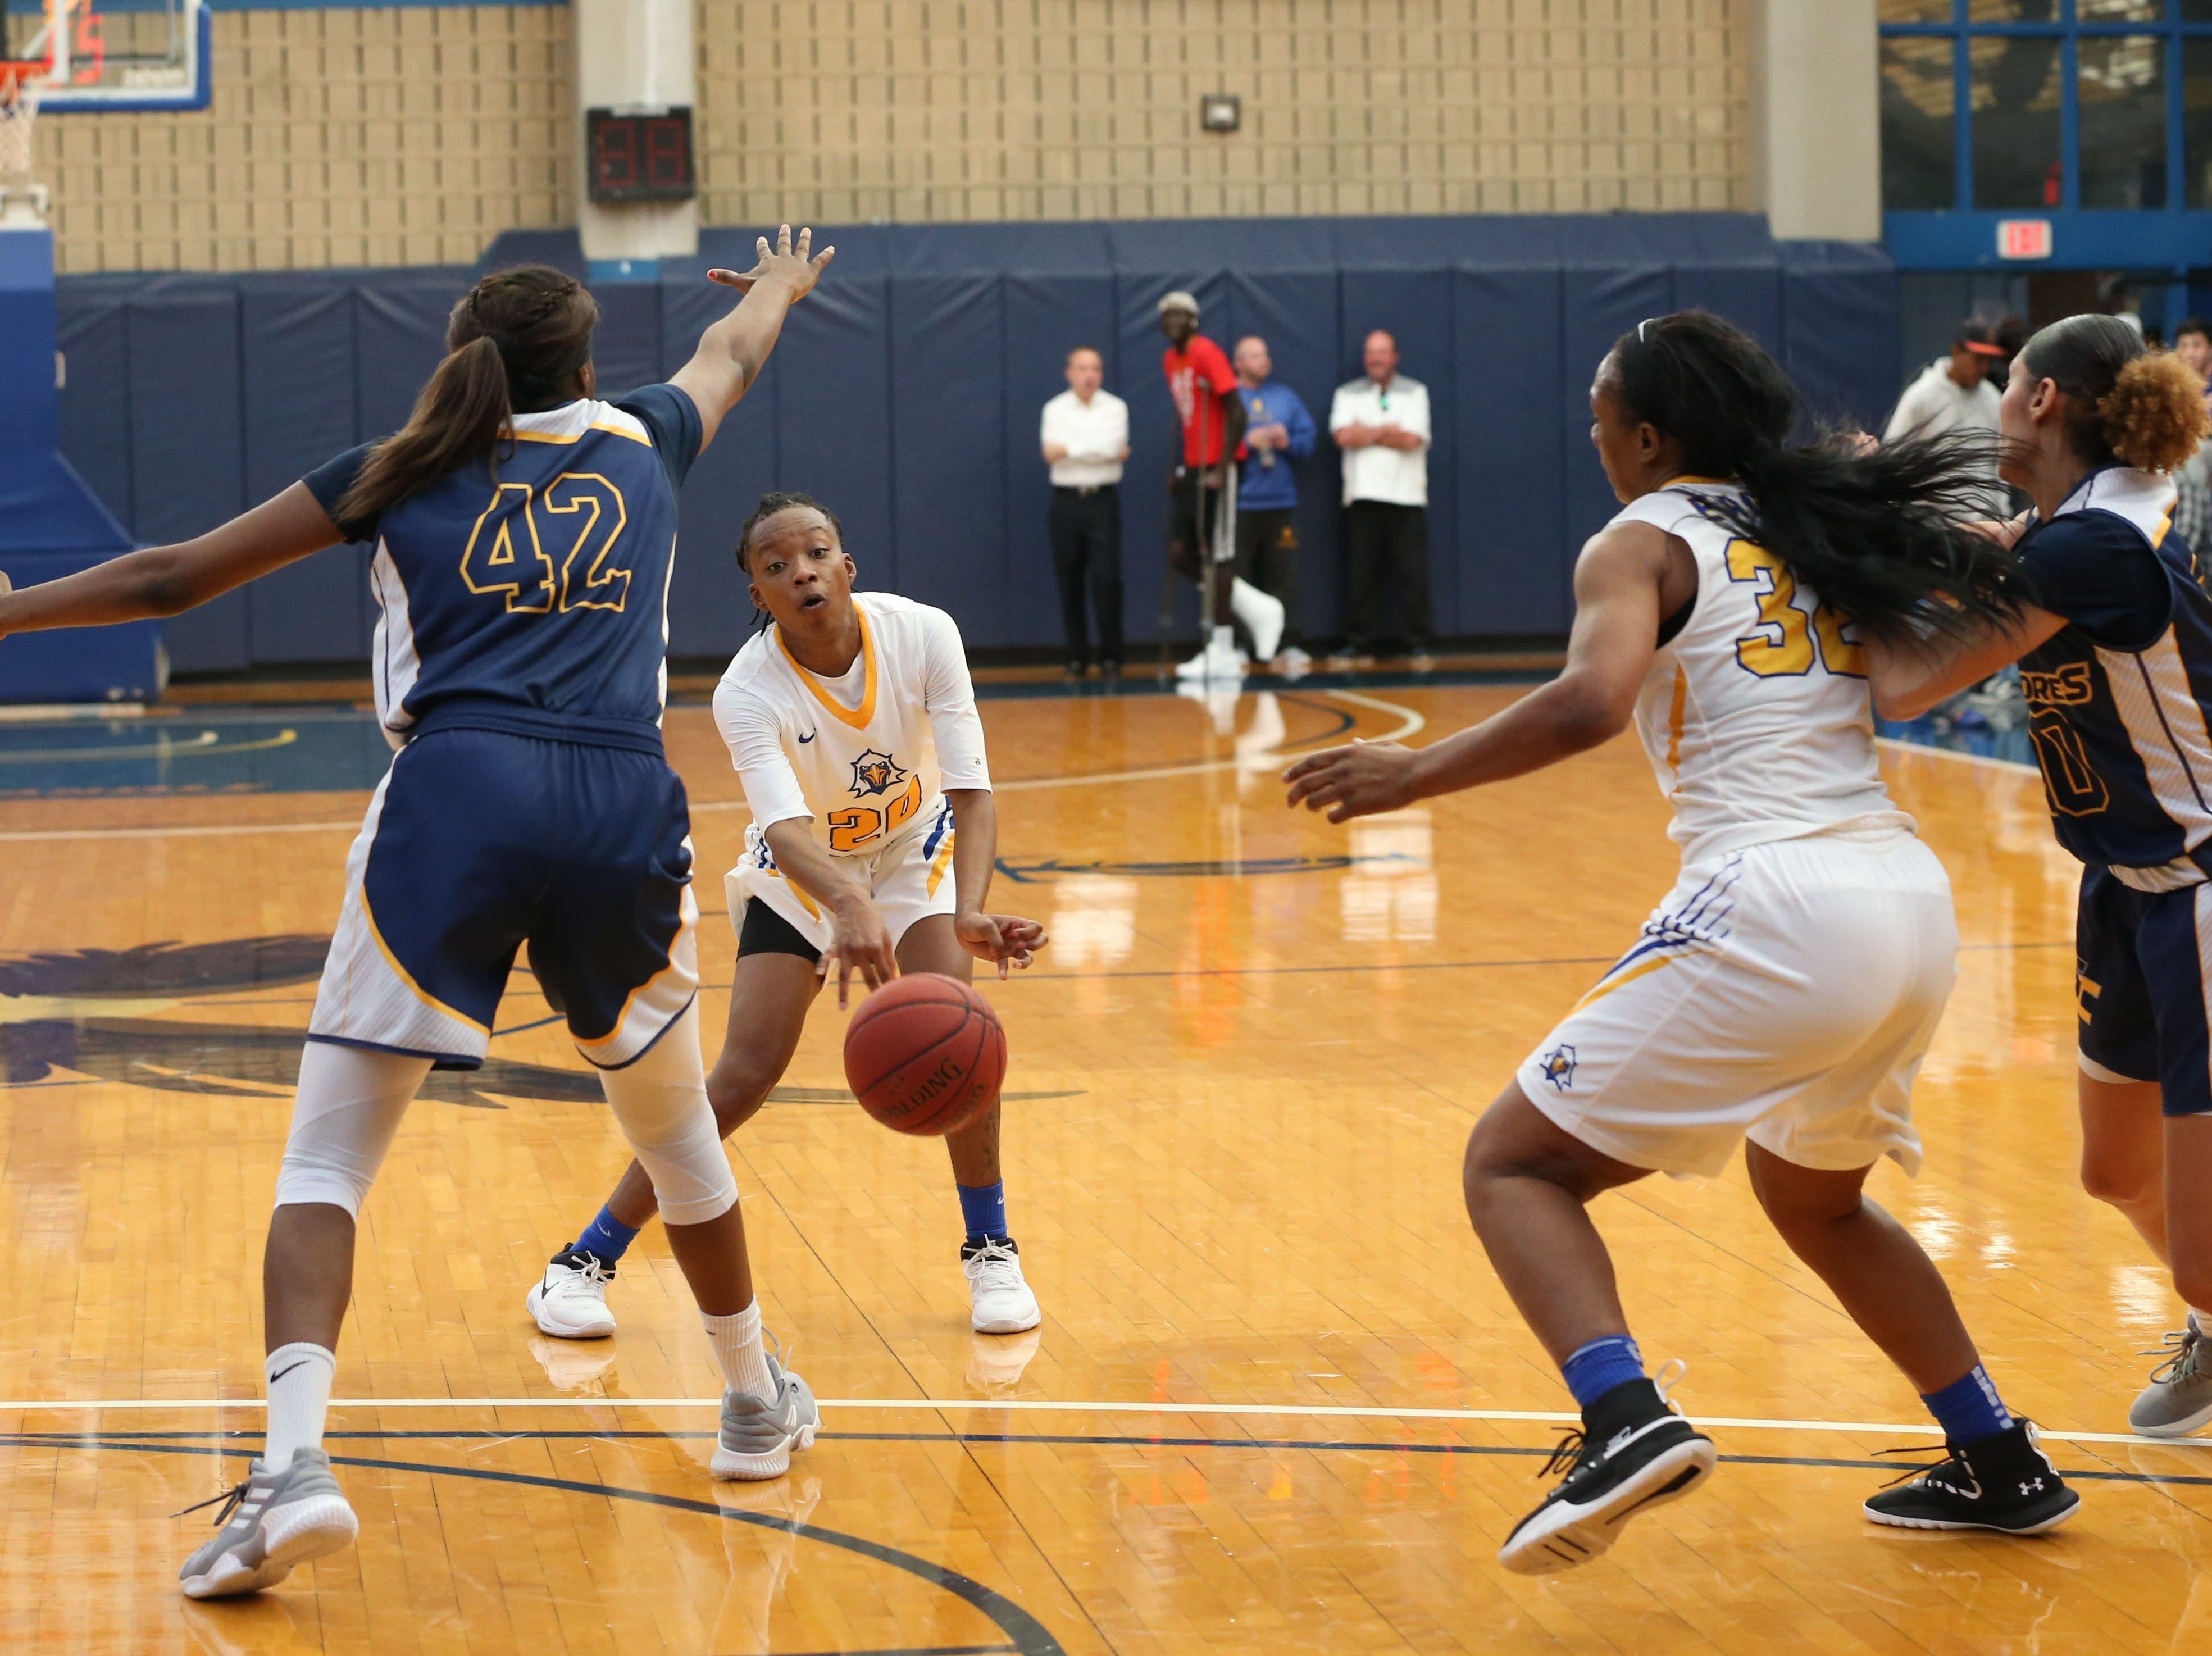 Tallahassee Community College Eagles guard Daisha Bradford (20) passes to Tallahassee Community College Eagles forward Jamyra McChristine (32). The Tallahassee Community College Eagles host the Gulf Coast State College Commodores in a conference match-up in the Eagledome, Saturday, Jan. 5, 2019.